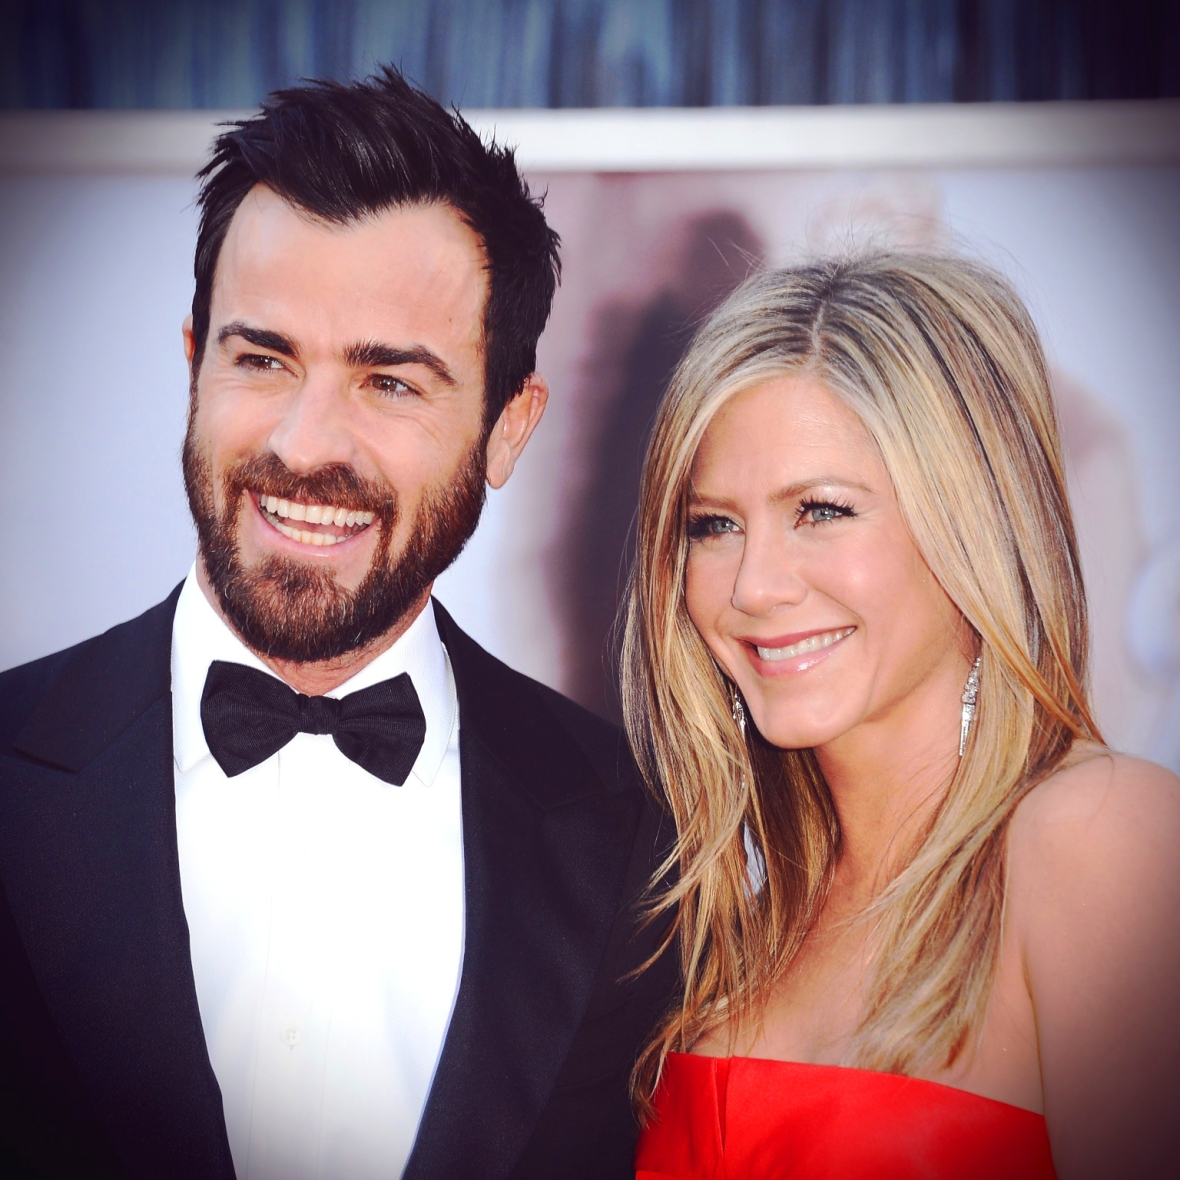 jennifer-aniston-justin-theroux-death-wedding-guest-joel-silver-assistant